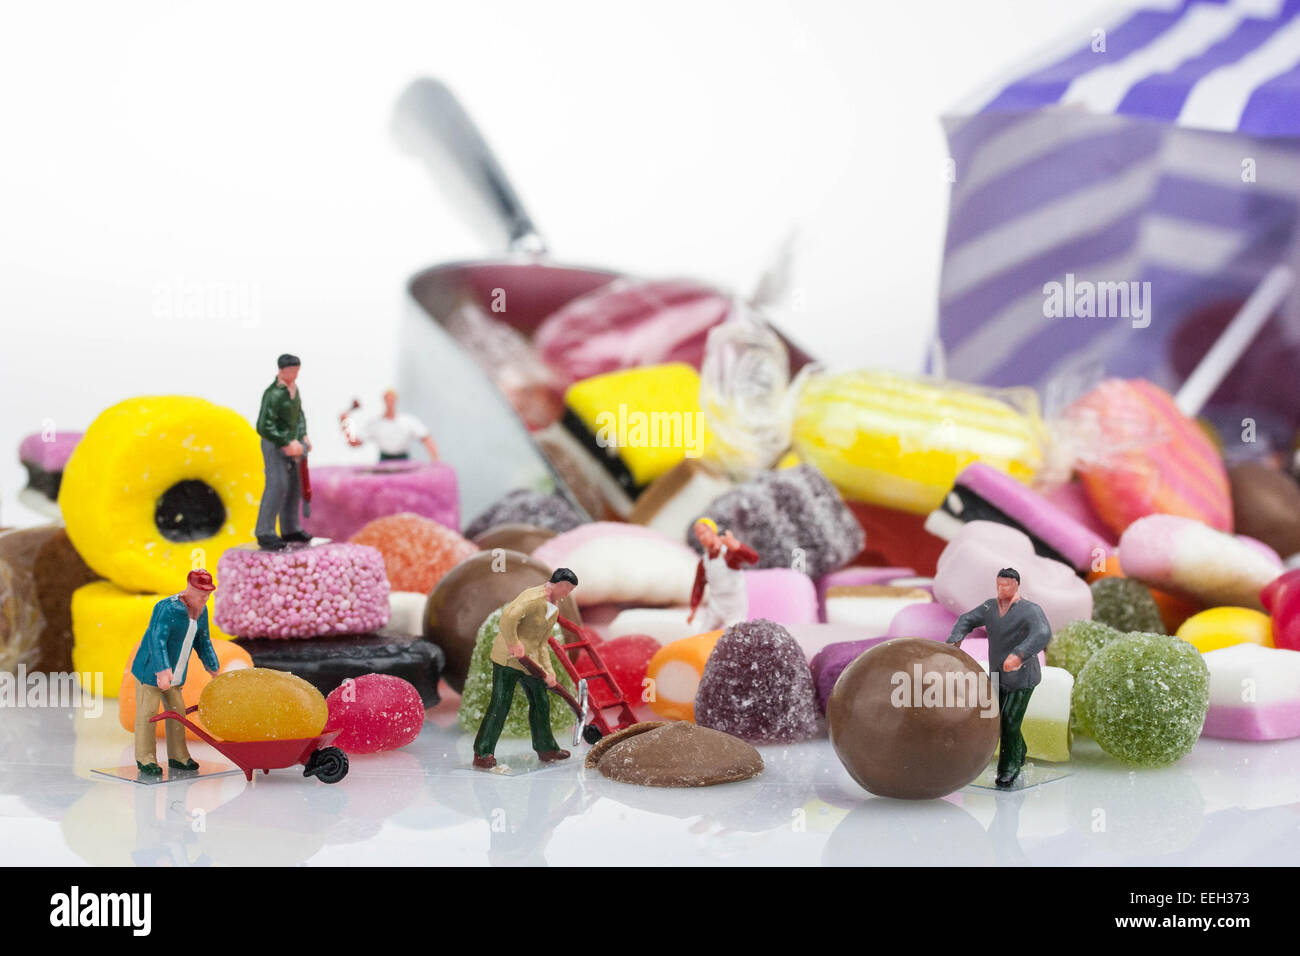 Sweets - Minuture people - Stock Image